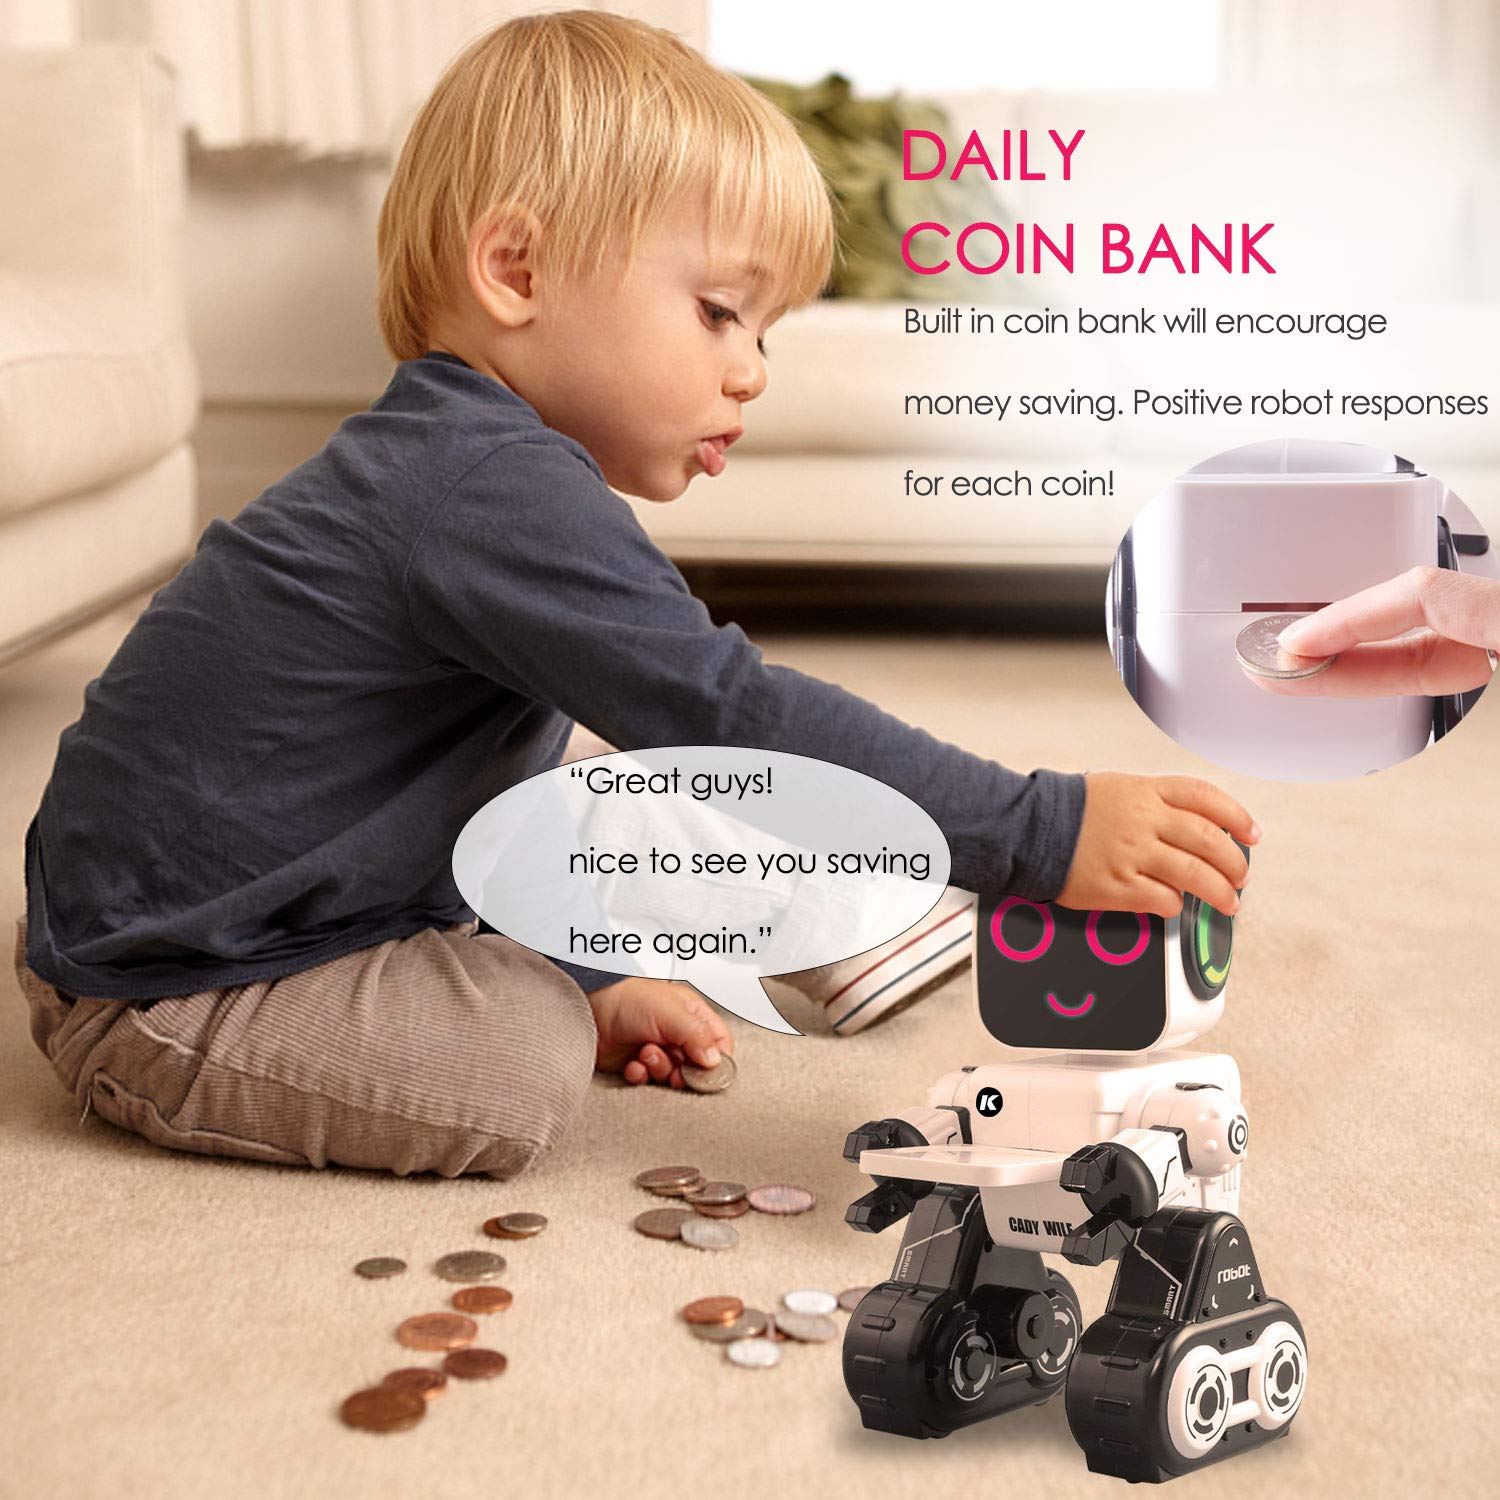 Remote Control Toy Robot for kids,Touch & Sound Control, Speaks, Dance Moves, Plays Music, Light-up Eyes & Mouth. Built-in Coin Bank. Programmable, Rechargeable RC Robot Kit for Boys, Girls All Ages. by IHBUDS (Image #2)